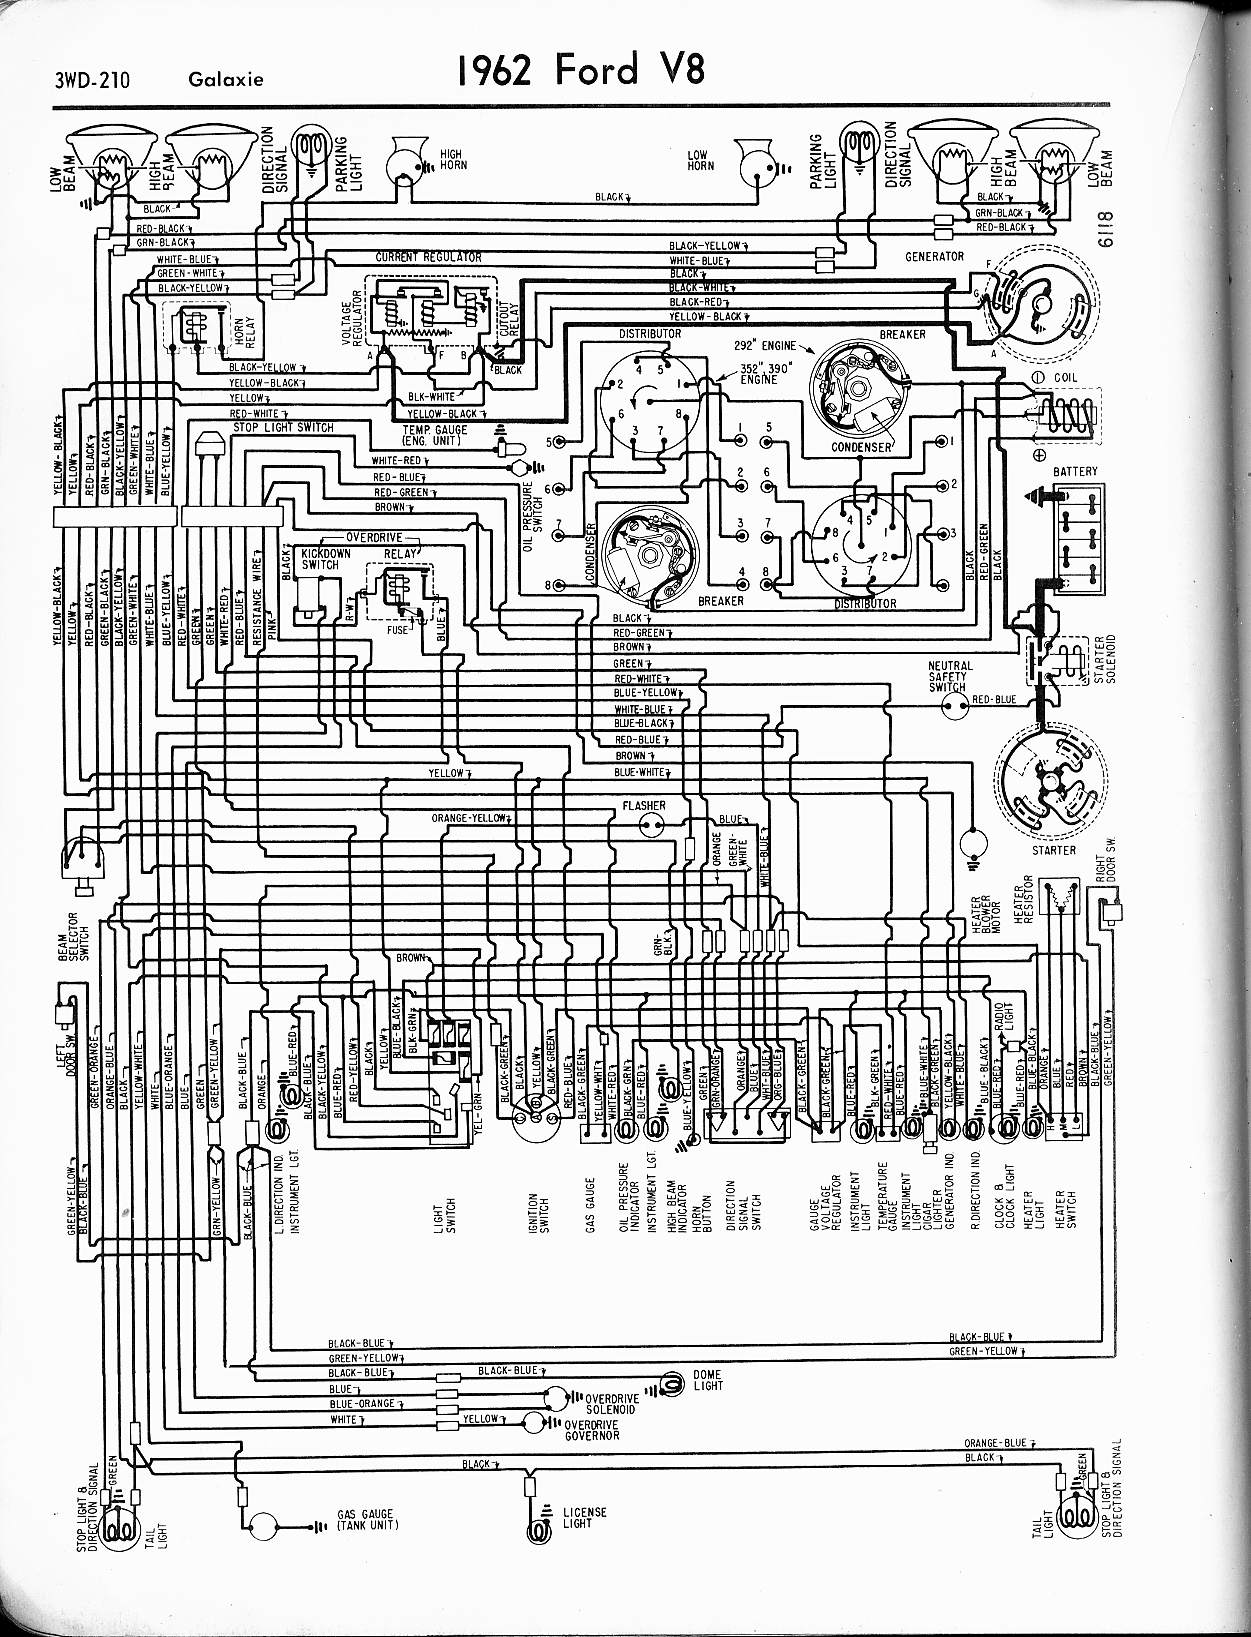 hight resolution of 1962 ford fuse box wiring diagram 1974 ford f100 fuse panel diagram furthermore 1965 thunderbird wiring